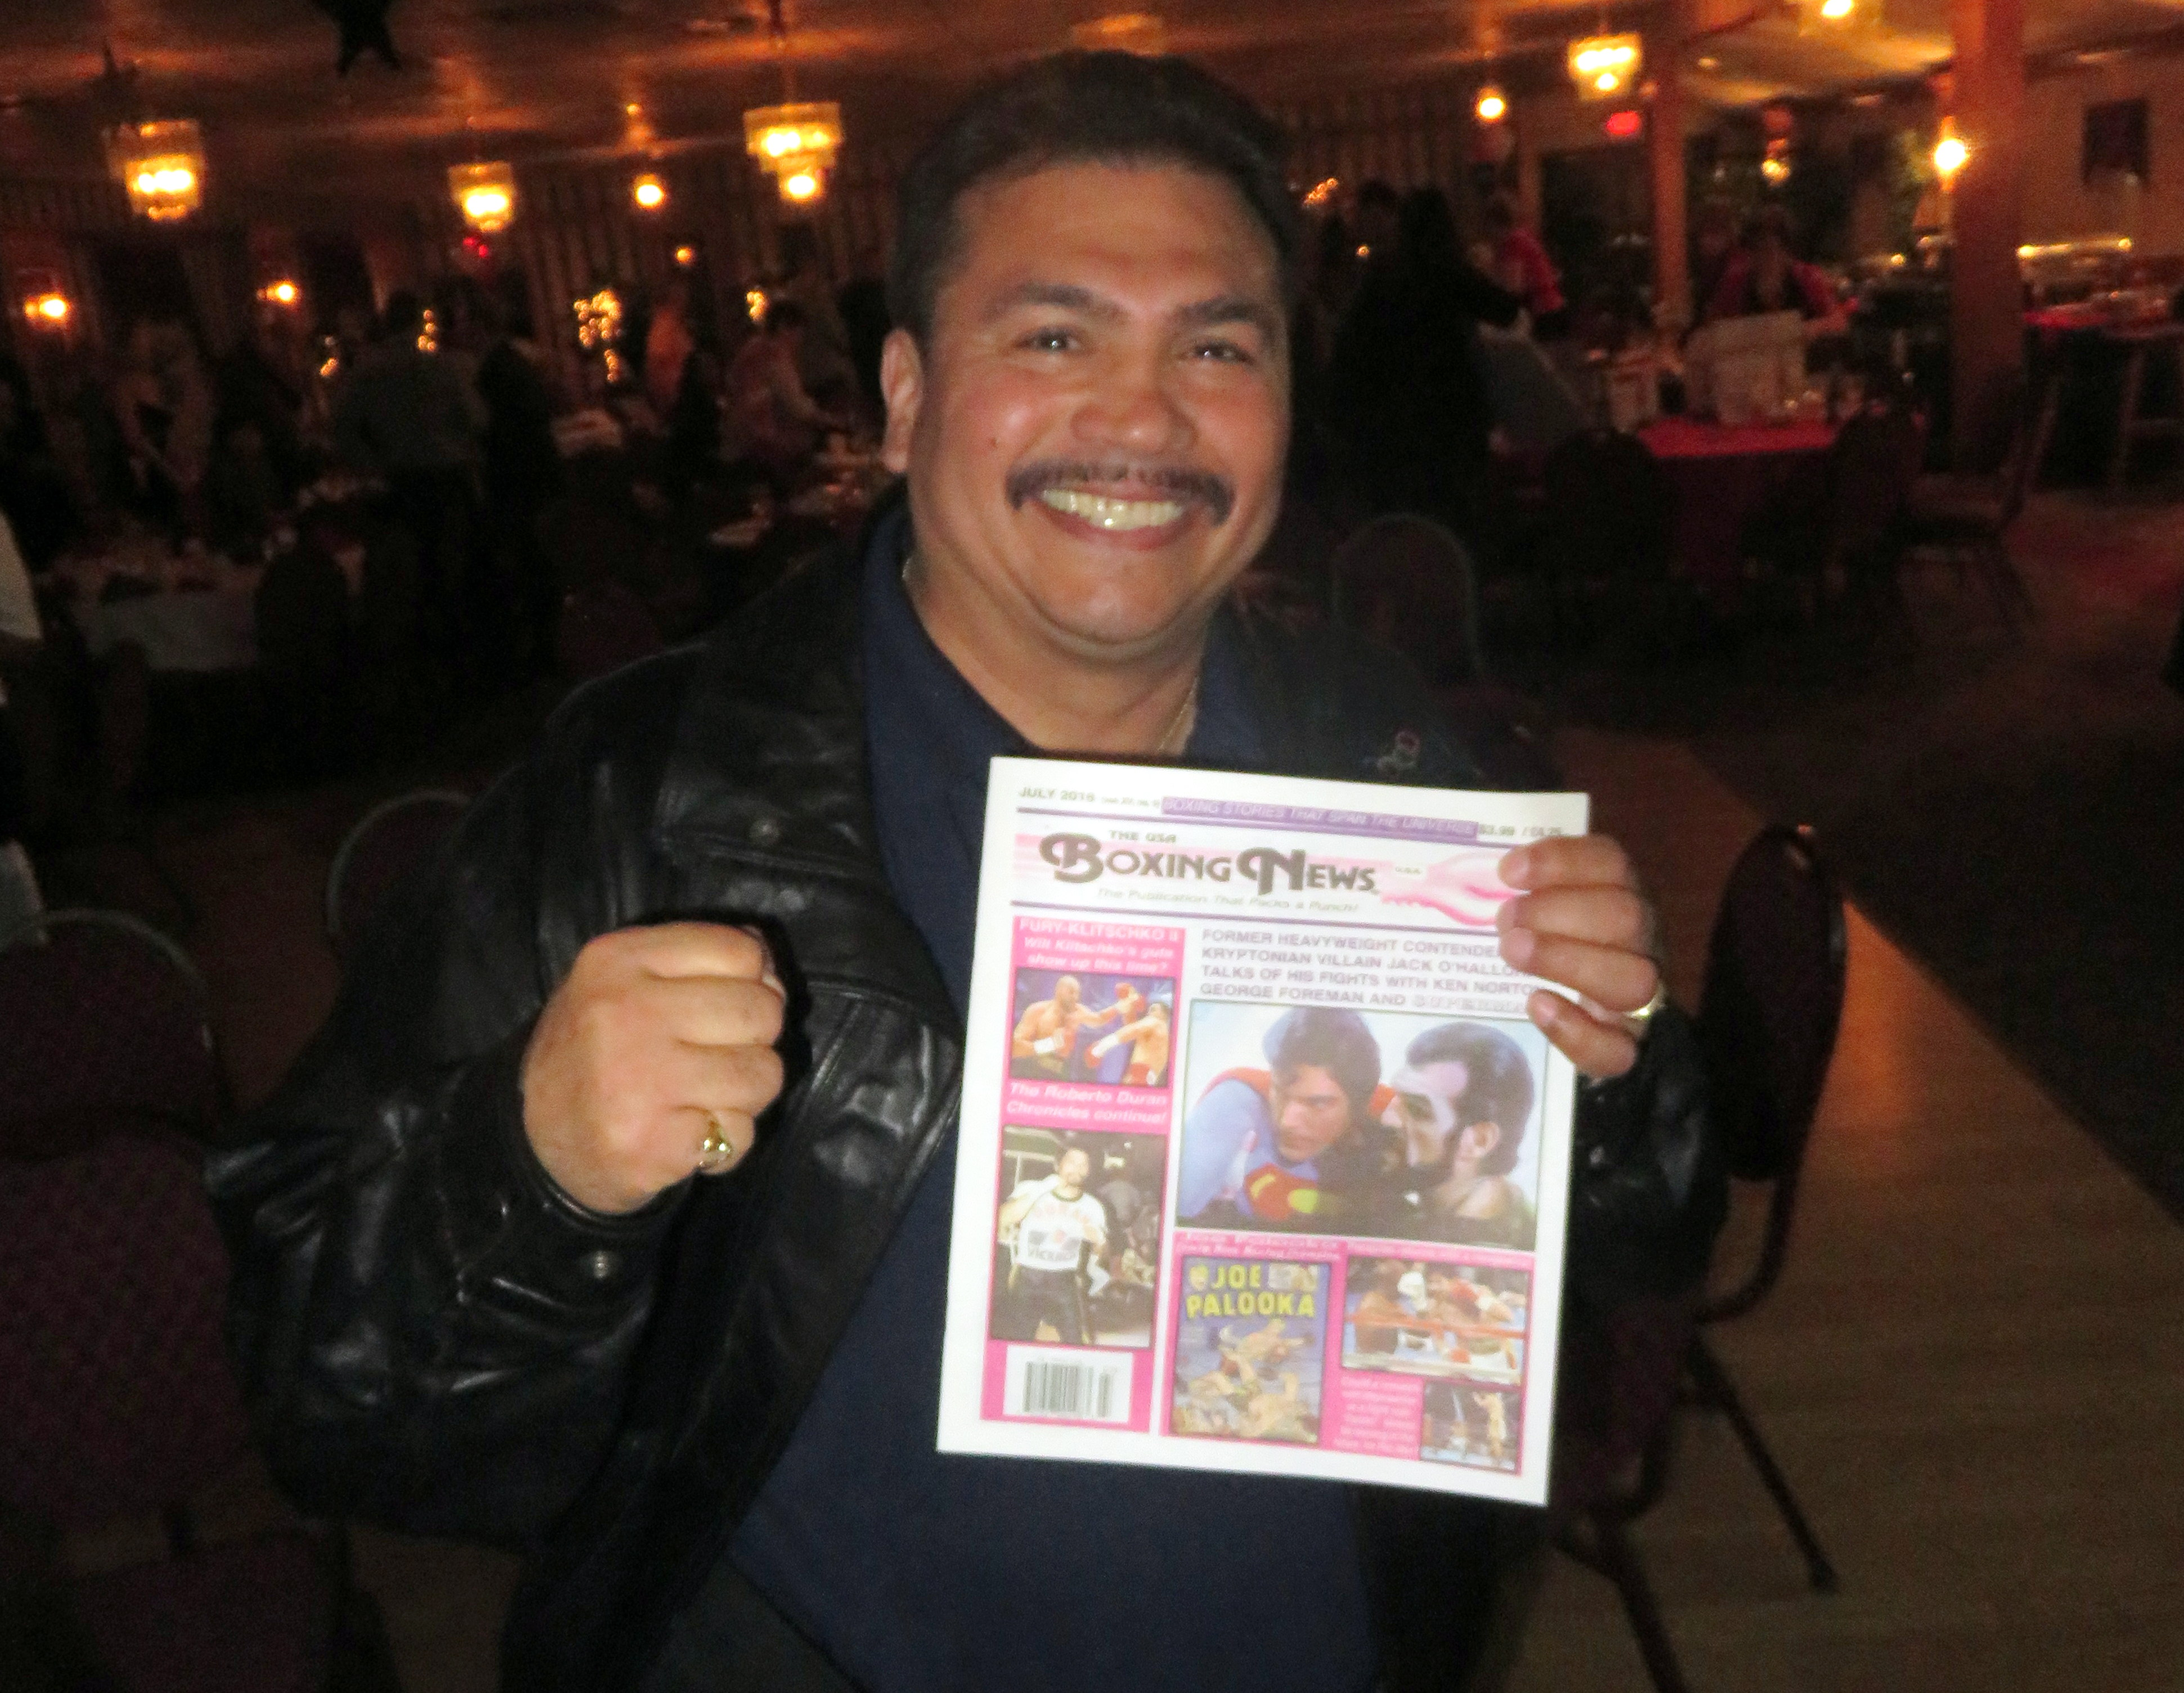 FINALThe USA Boxing News with 1984 Olympic Gold Medalist and IBF bantam contender Paul Gonzalez.2